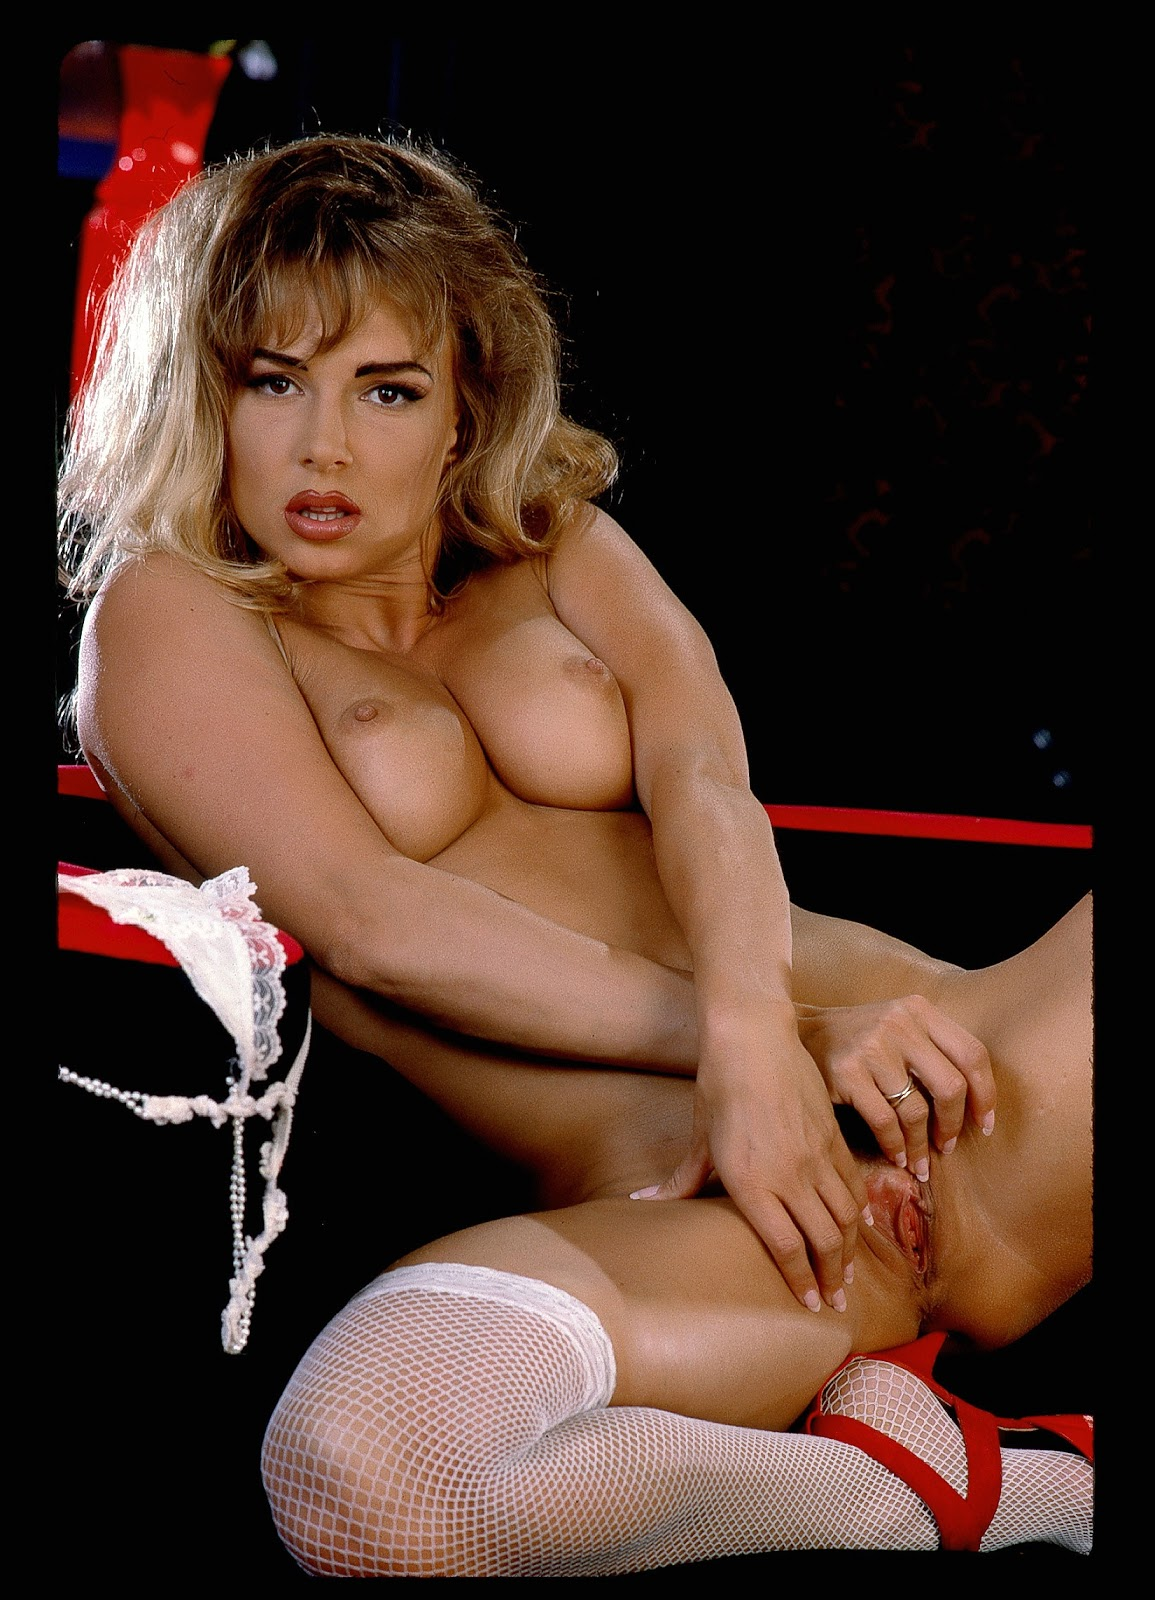 Deidre holland nude pictures, images and galleries